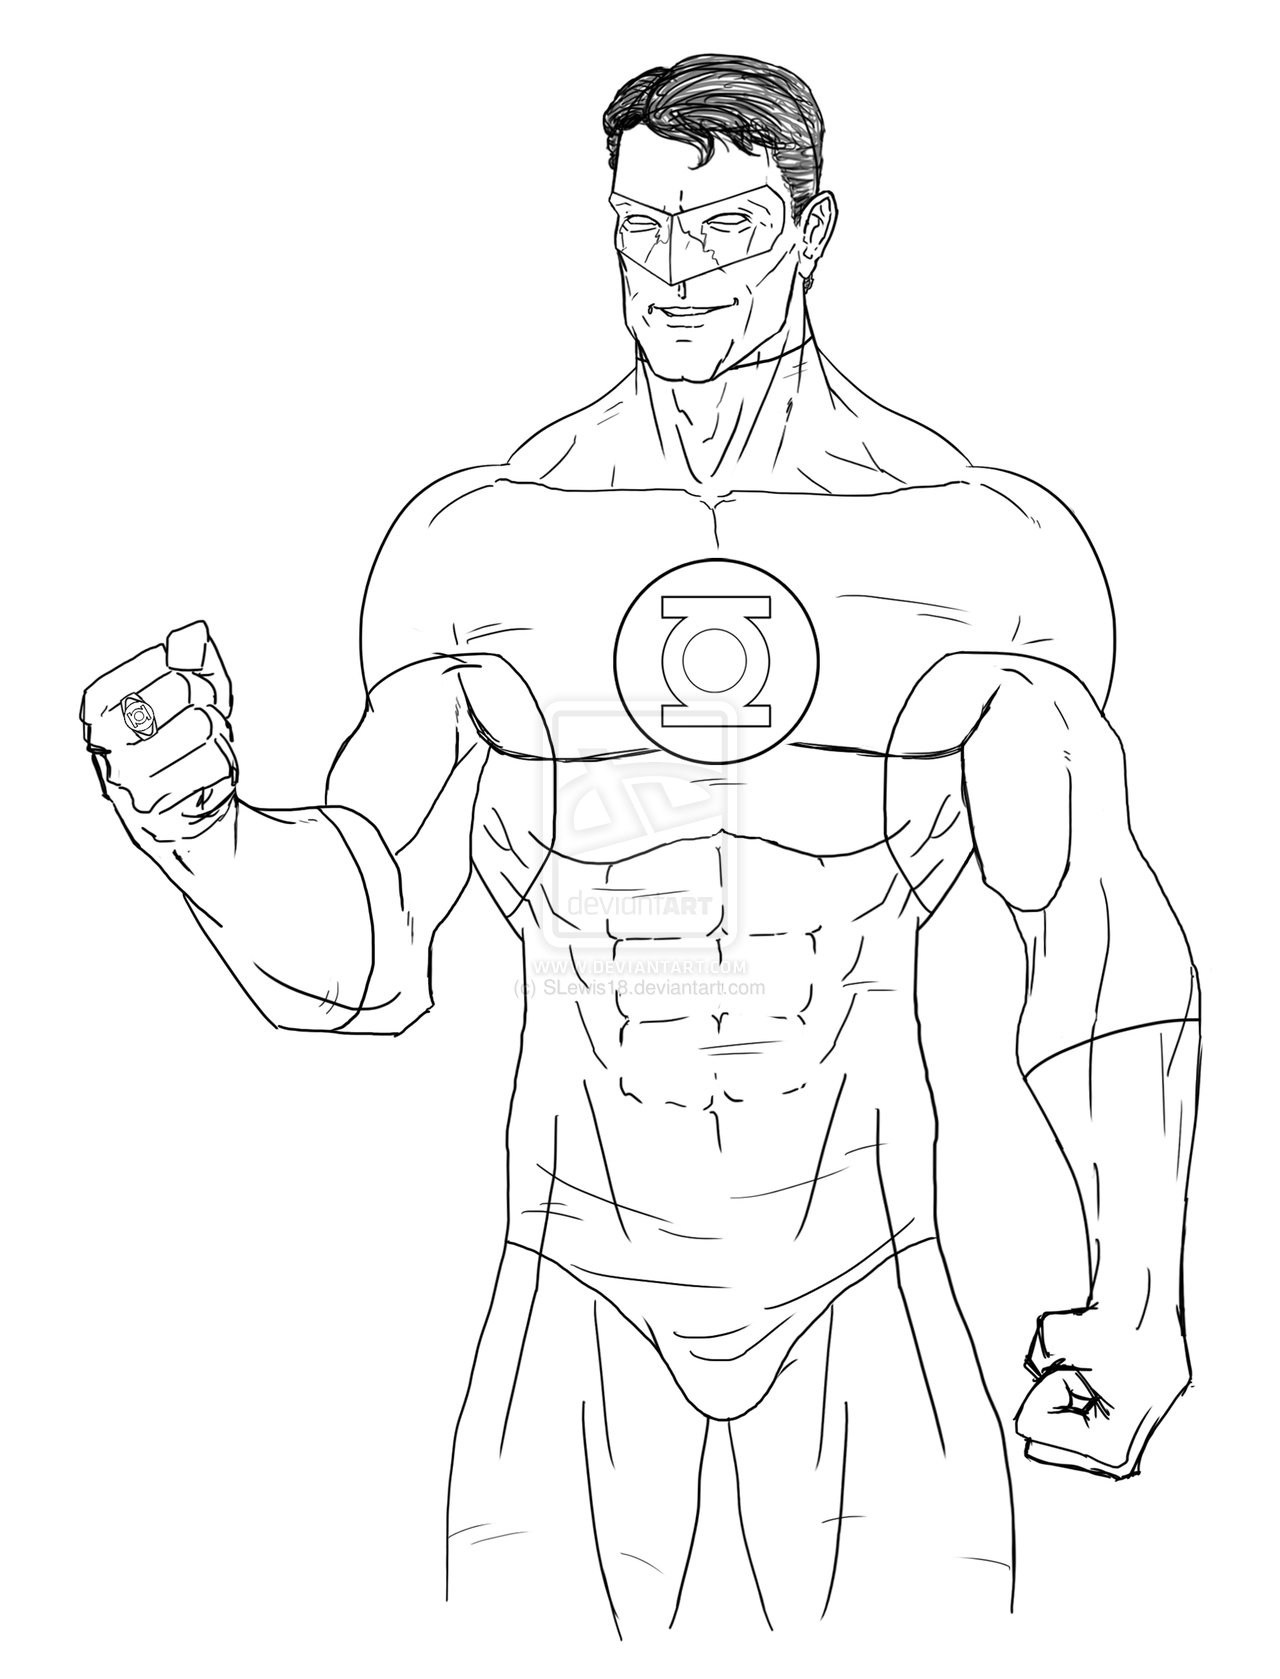 justice league coloring pages - Green Lantern digital sketch